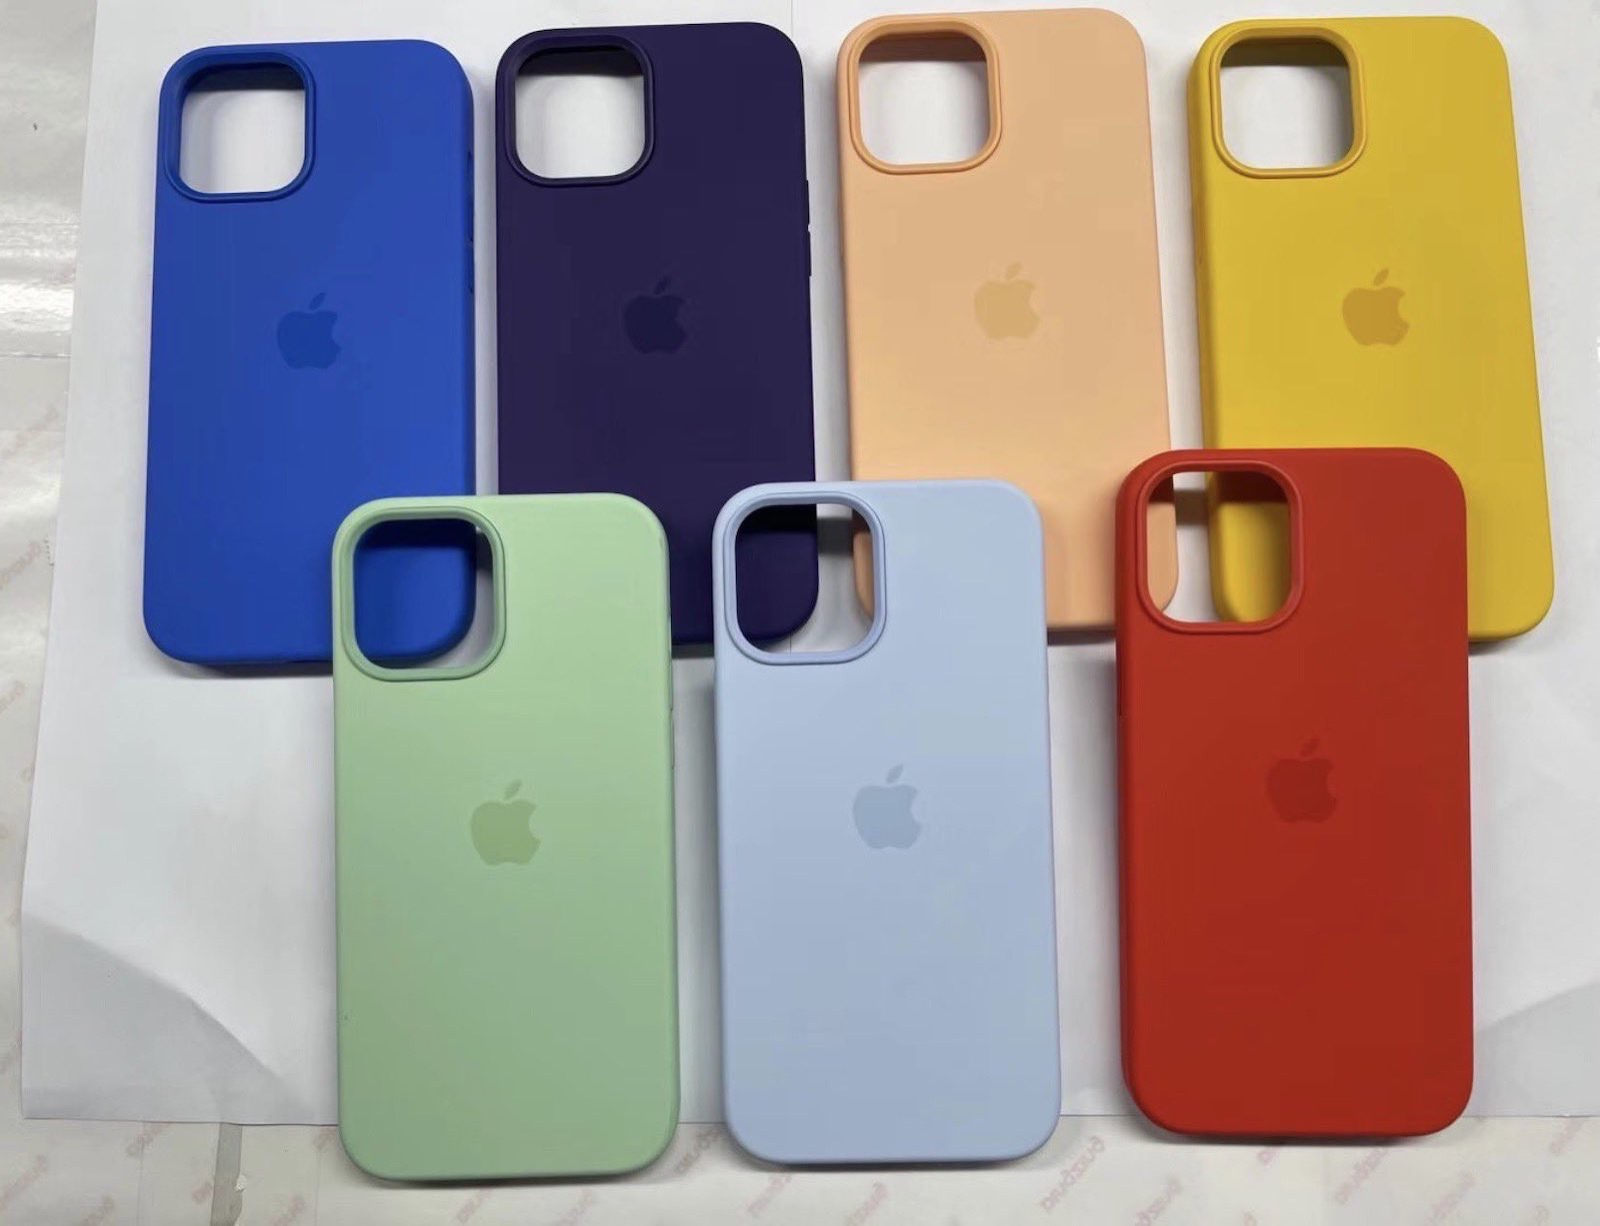 All spring colors for iphone cases